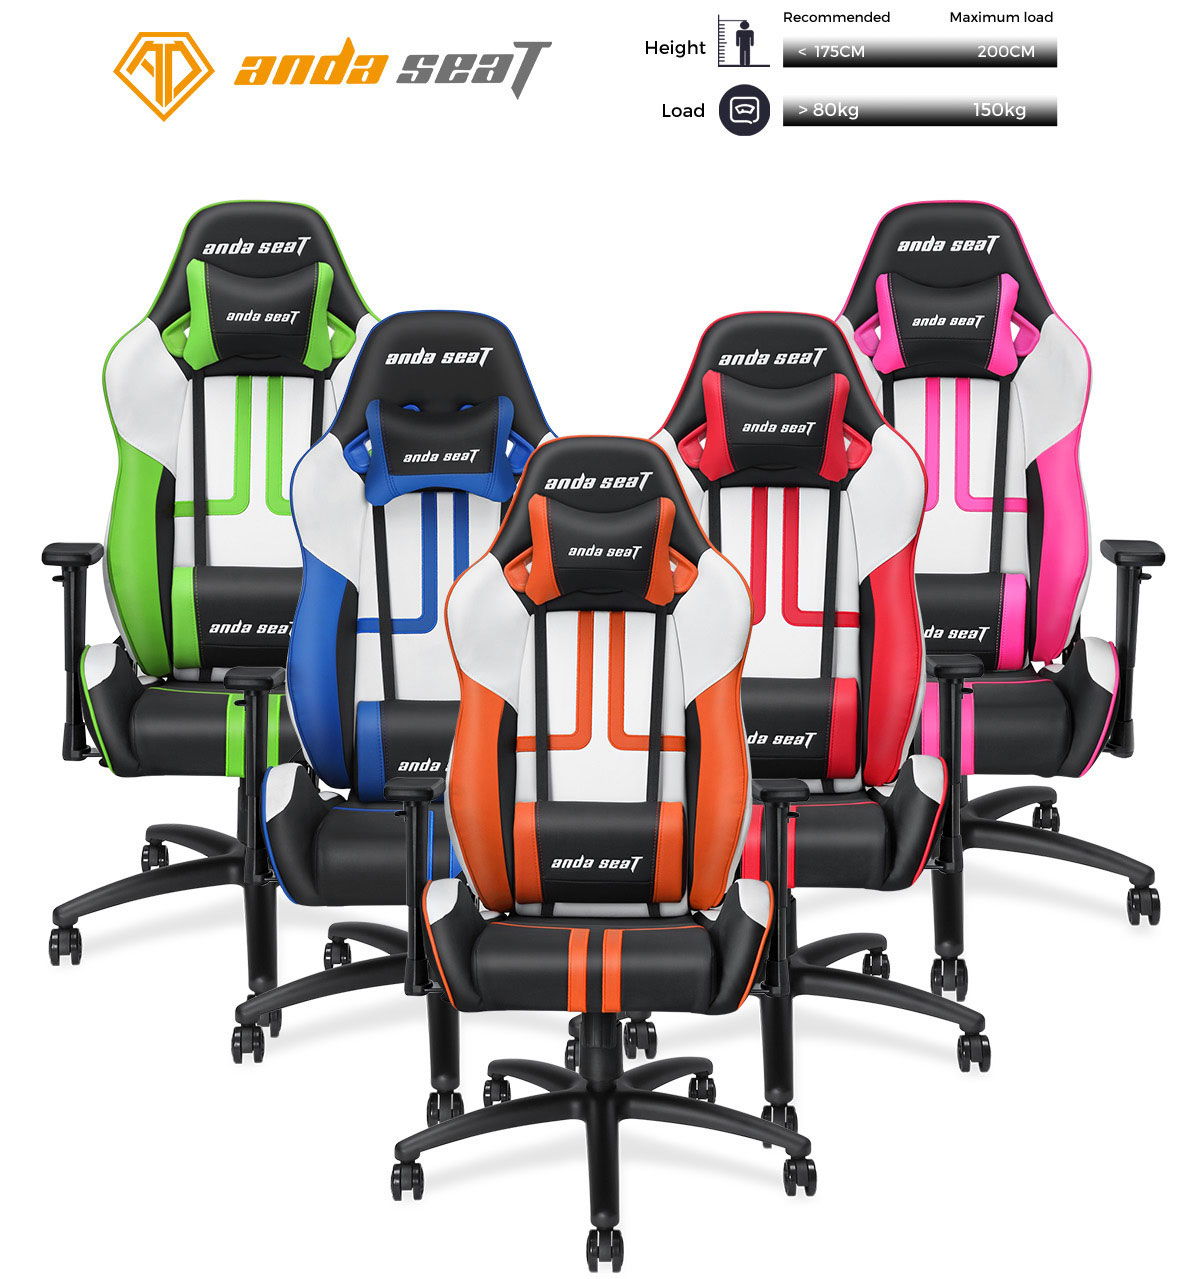 Super Anda Seat Viper Series Large Size Gaming Chair Swivel Rocker Tilt E Sports Recliner Office Chair With Pillows Black White Green Ad7 05 Bwe Pv Bralicious Painted Fabric Chair Ideas Braliciousco